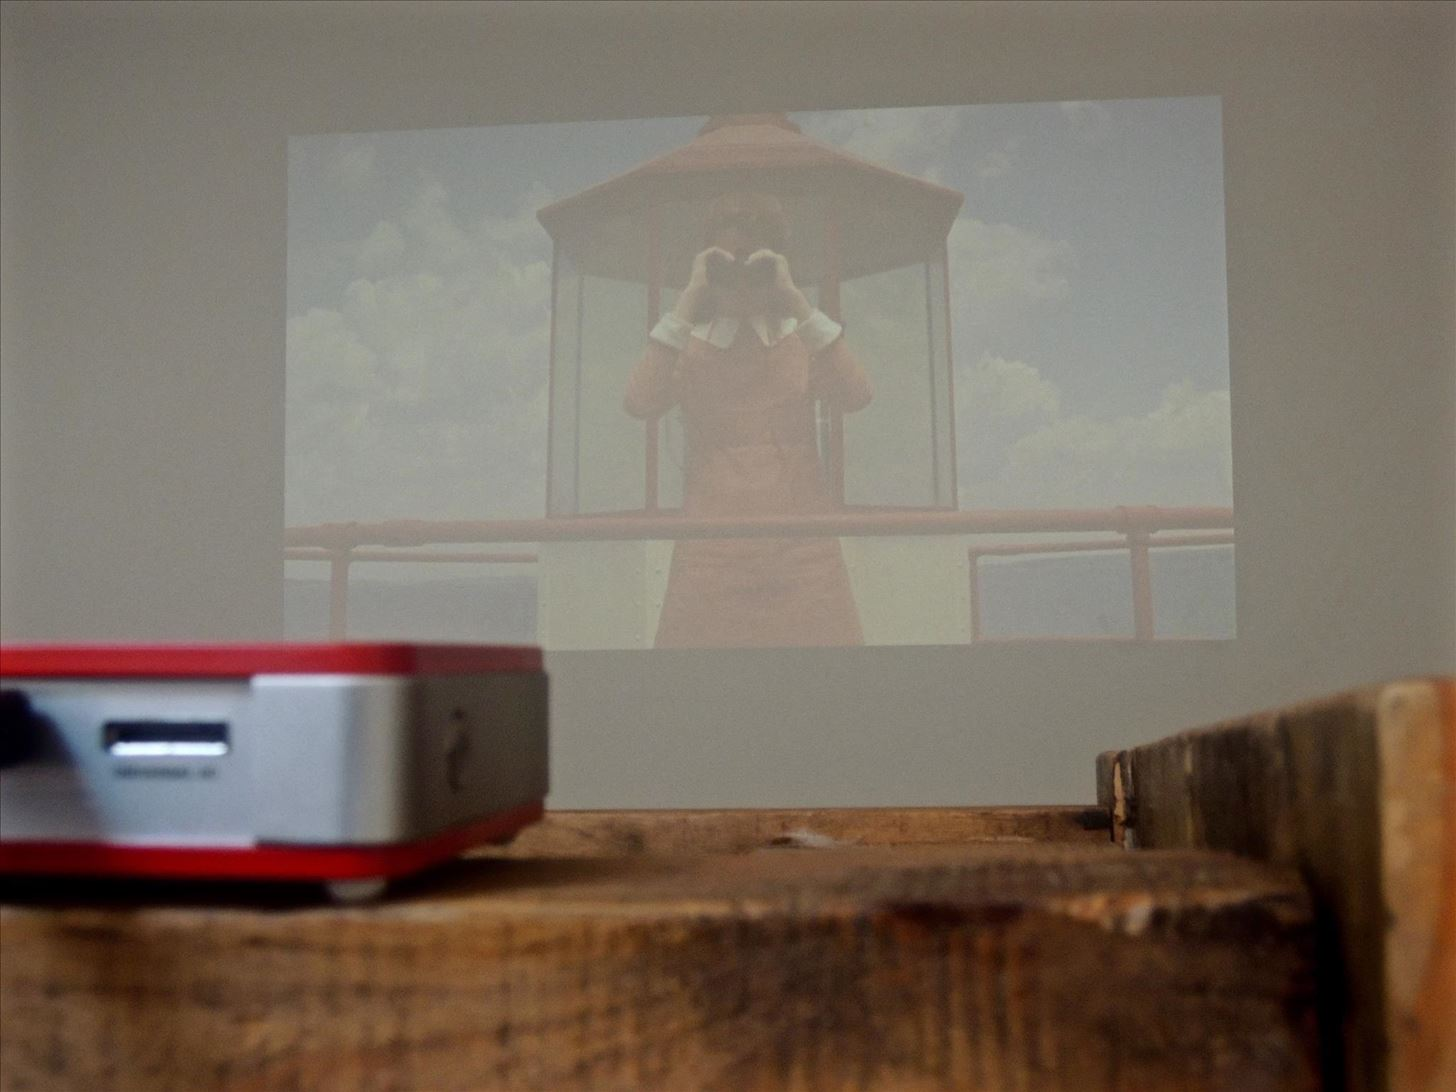 Review: The Qumi Q5 Pocket Projector Is a Solid On-the-Go Media Companion